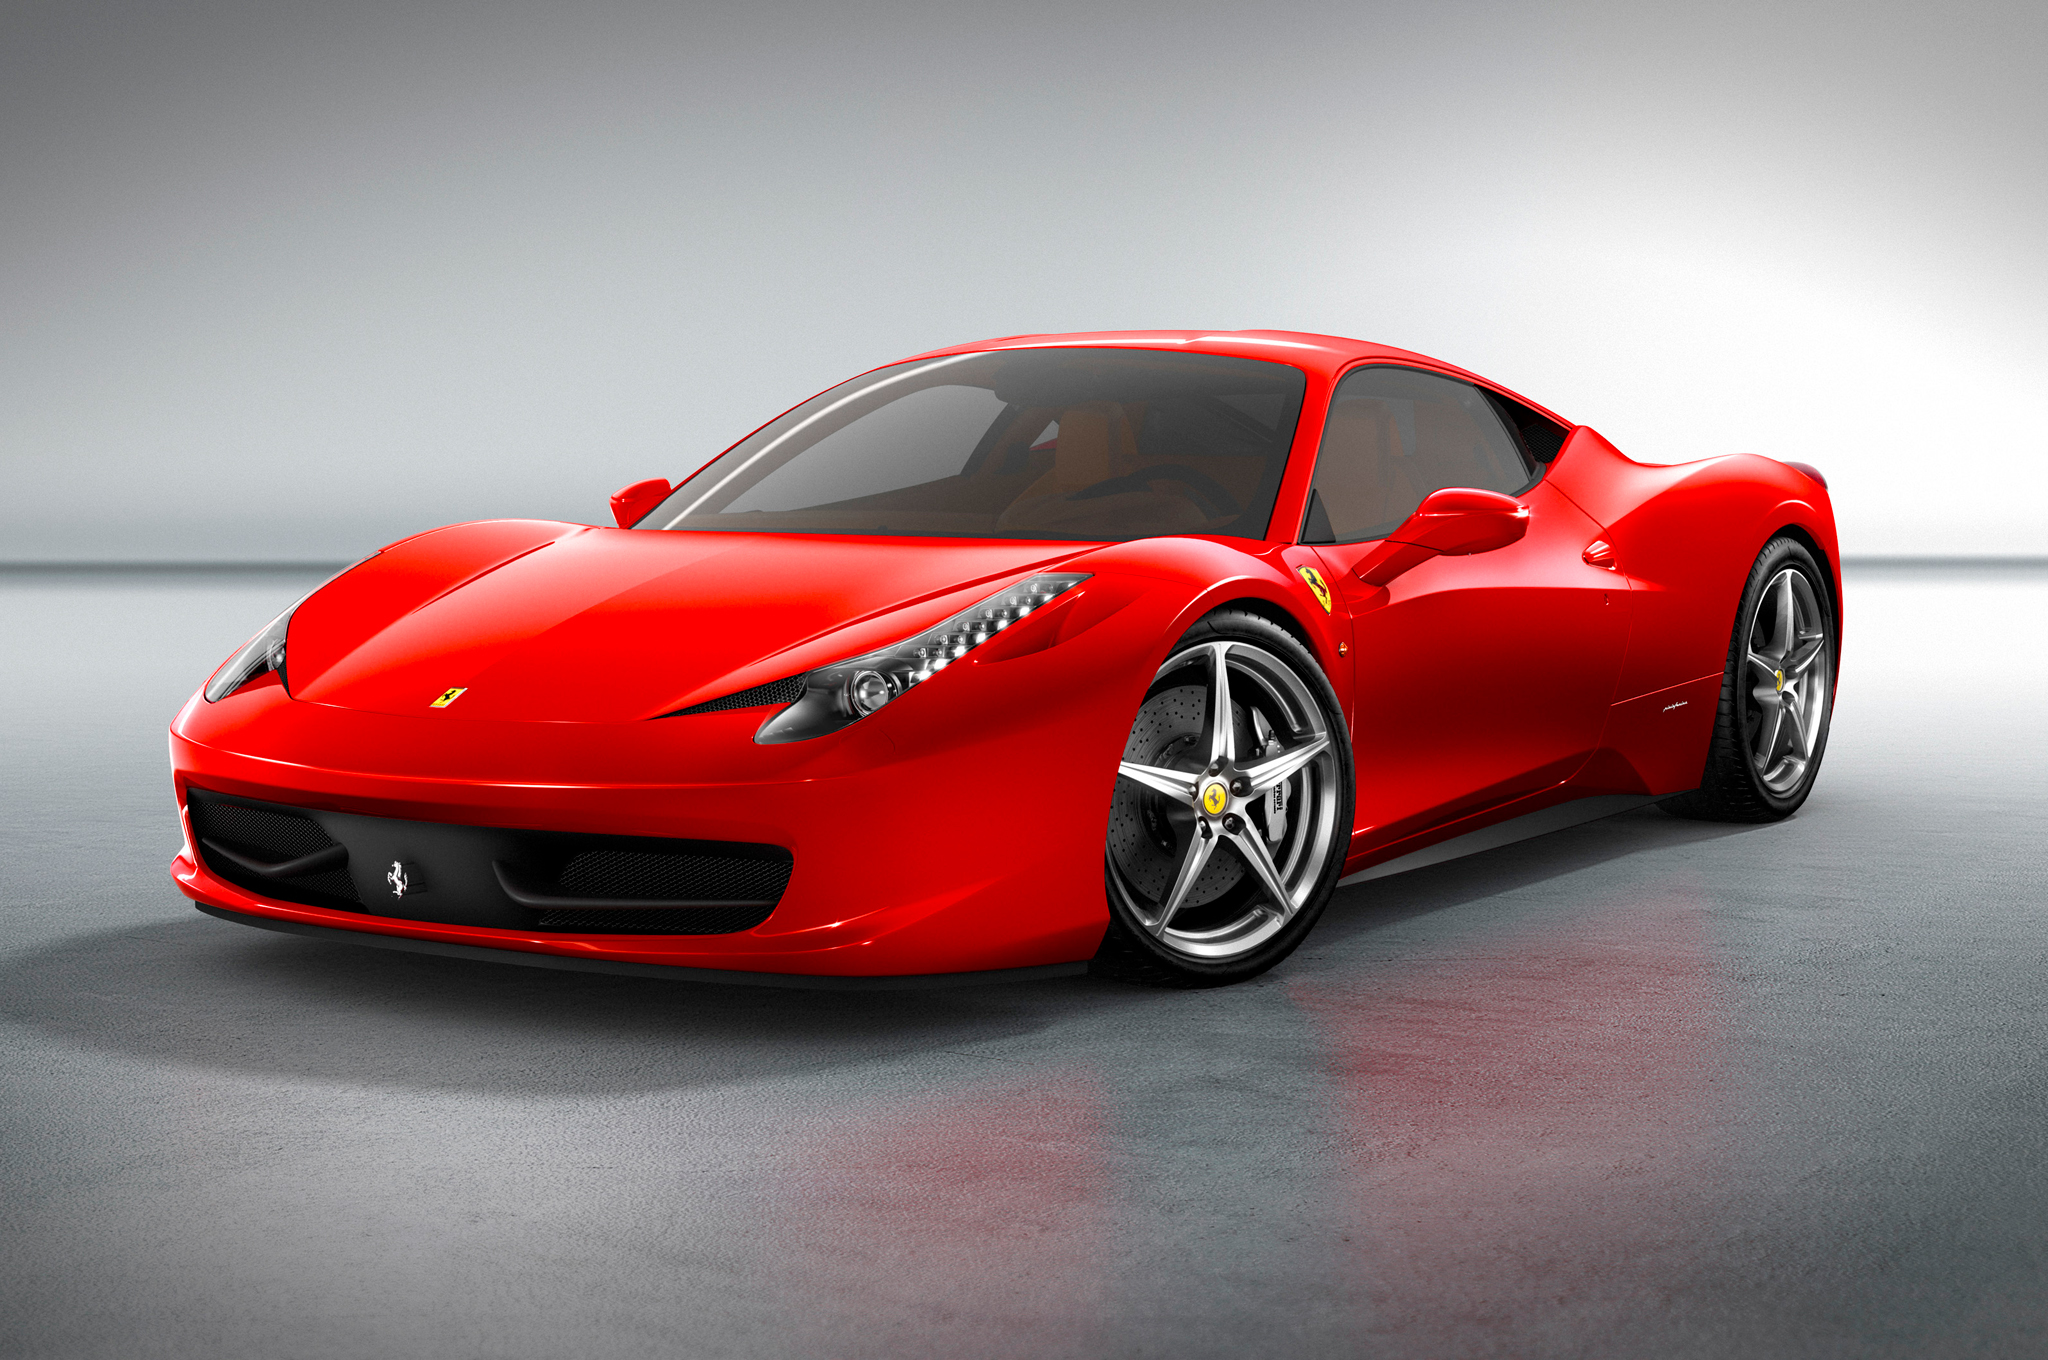 2013-Ferrari-458-Italia-Front-Three-Quarters-View.